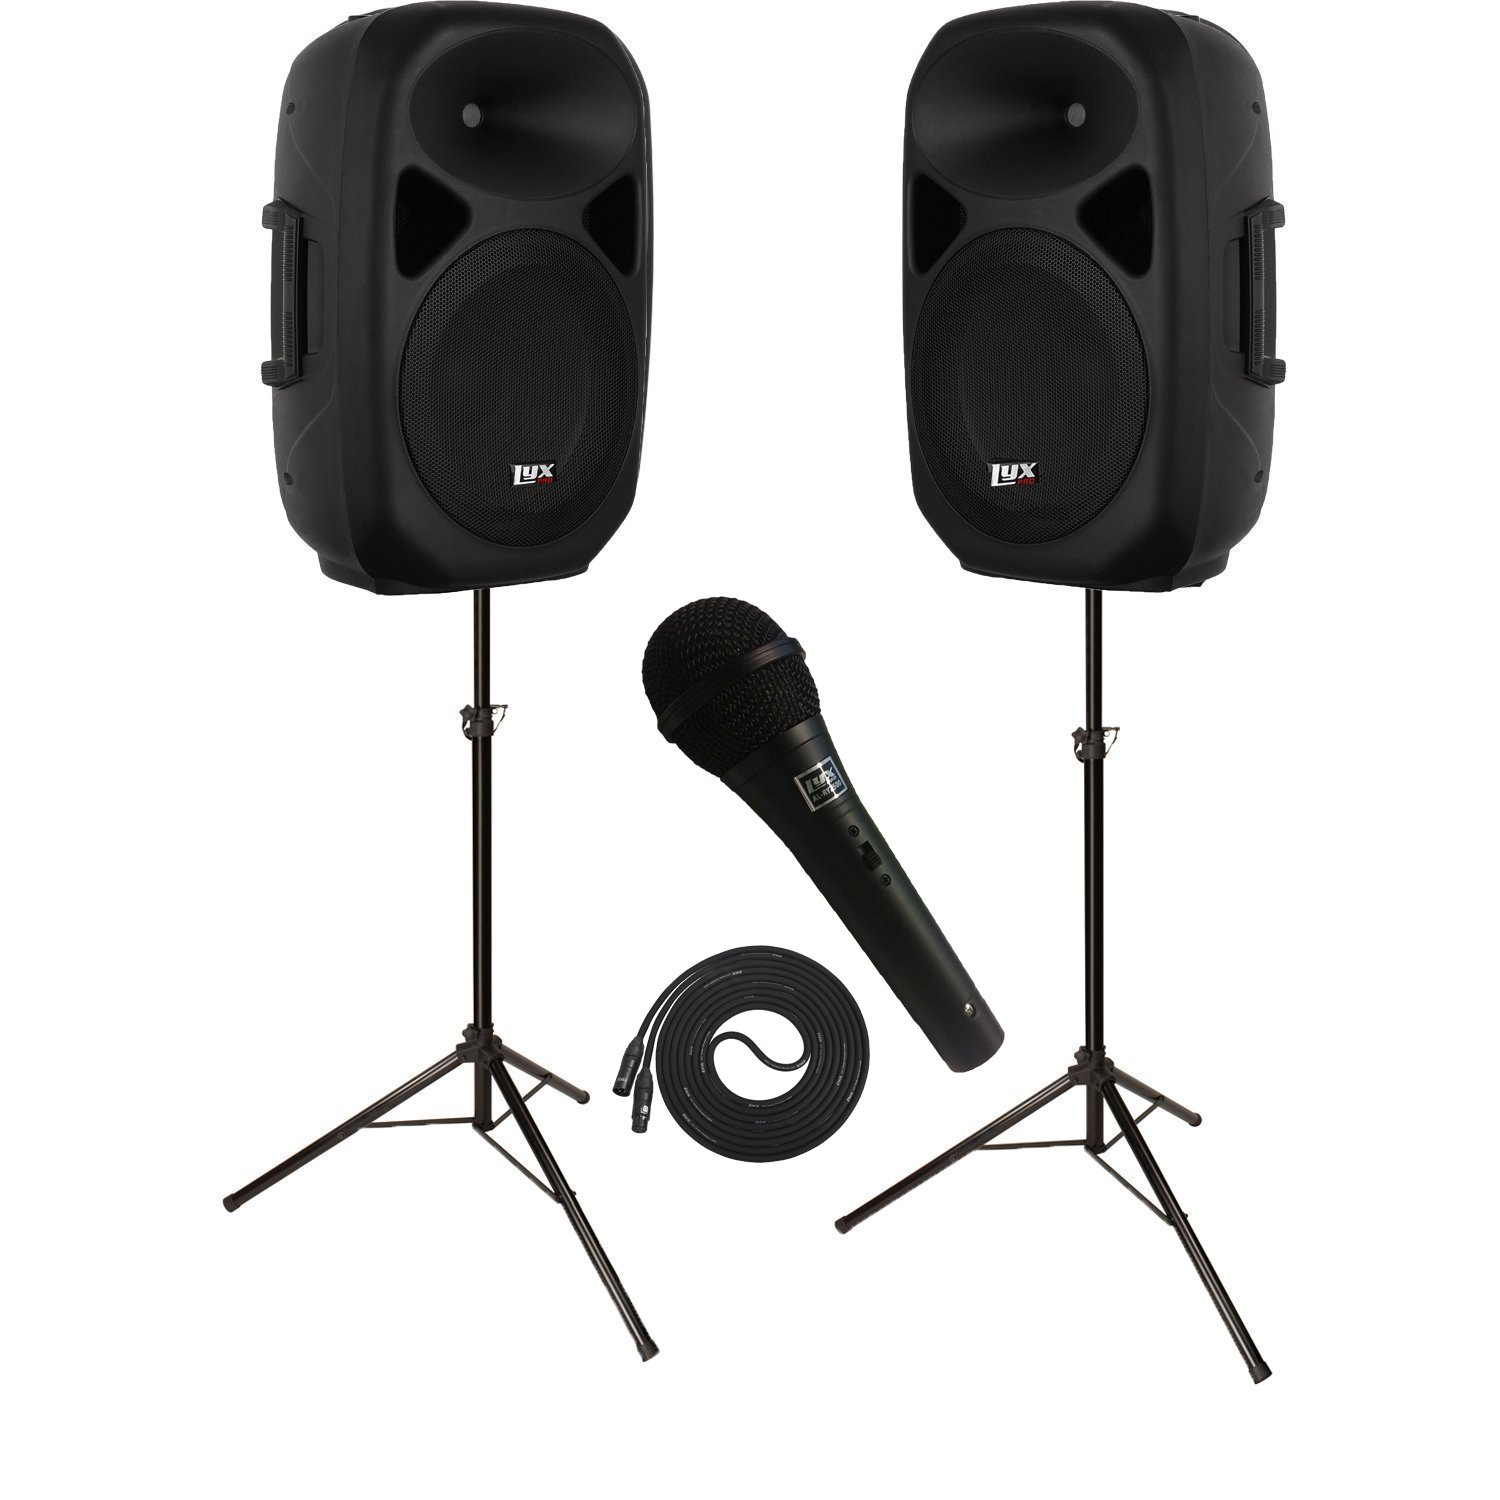 LyxPro SPEAKER KIT: 2 Speakers 15'' PA SYSTEMS w/ Onboard Equalizer, Bluetooth, SD CARD SLOT, USB, AUX Input, 2 SPEAKER STANDS and Microphone